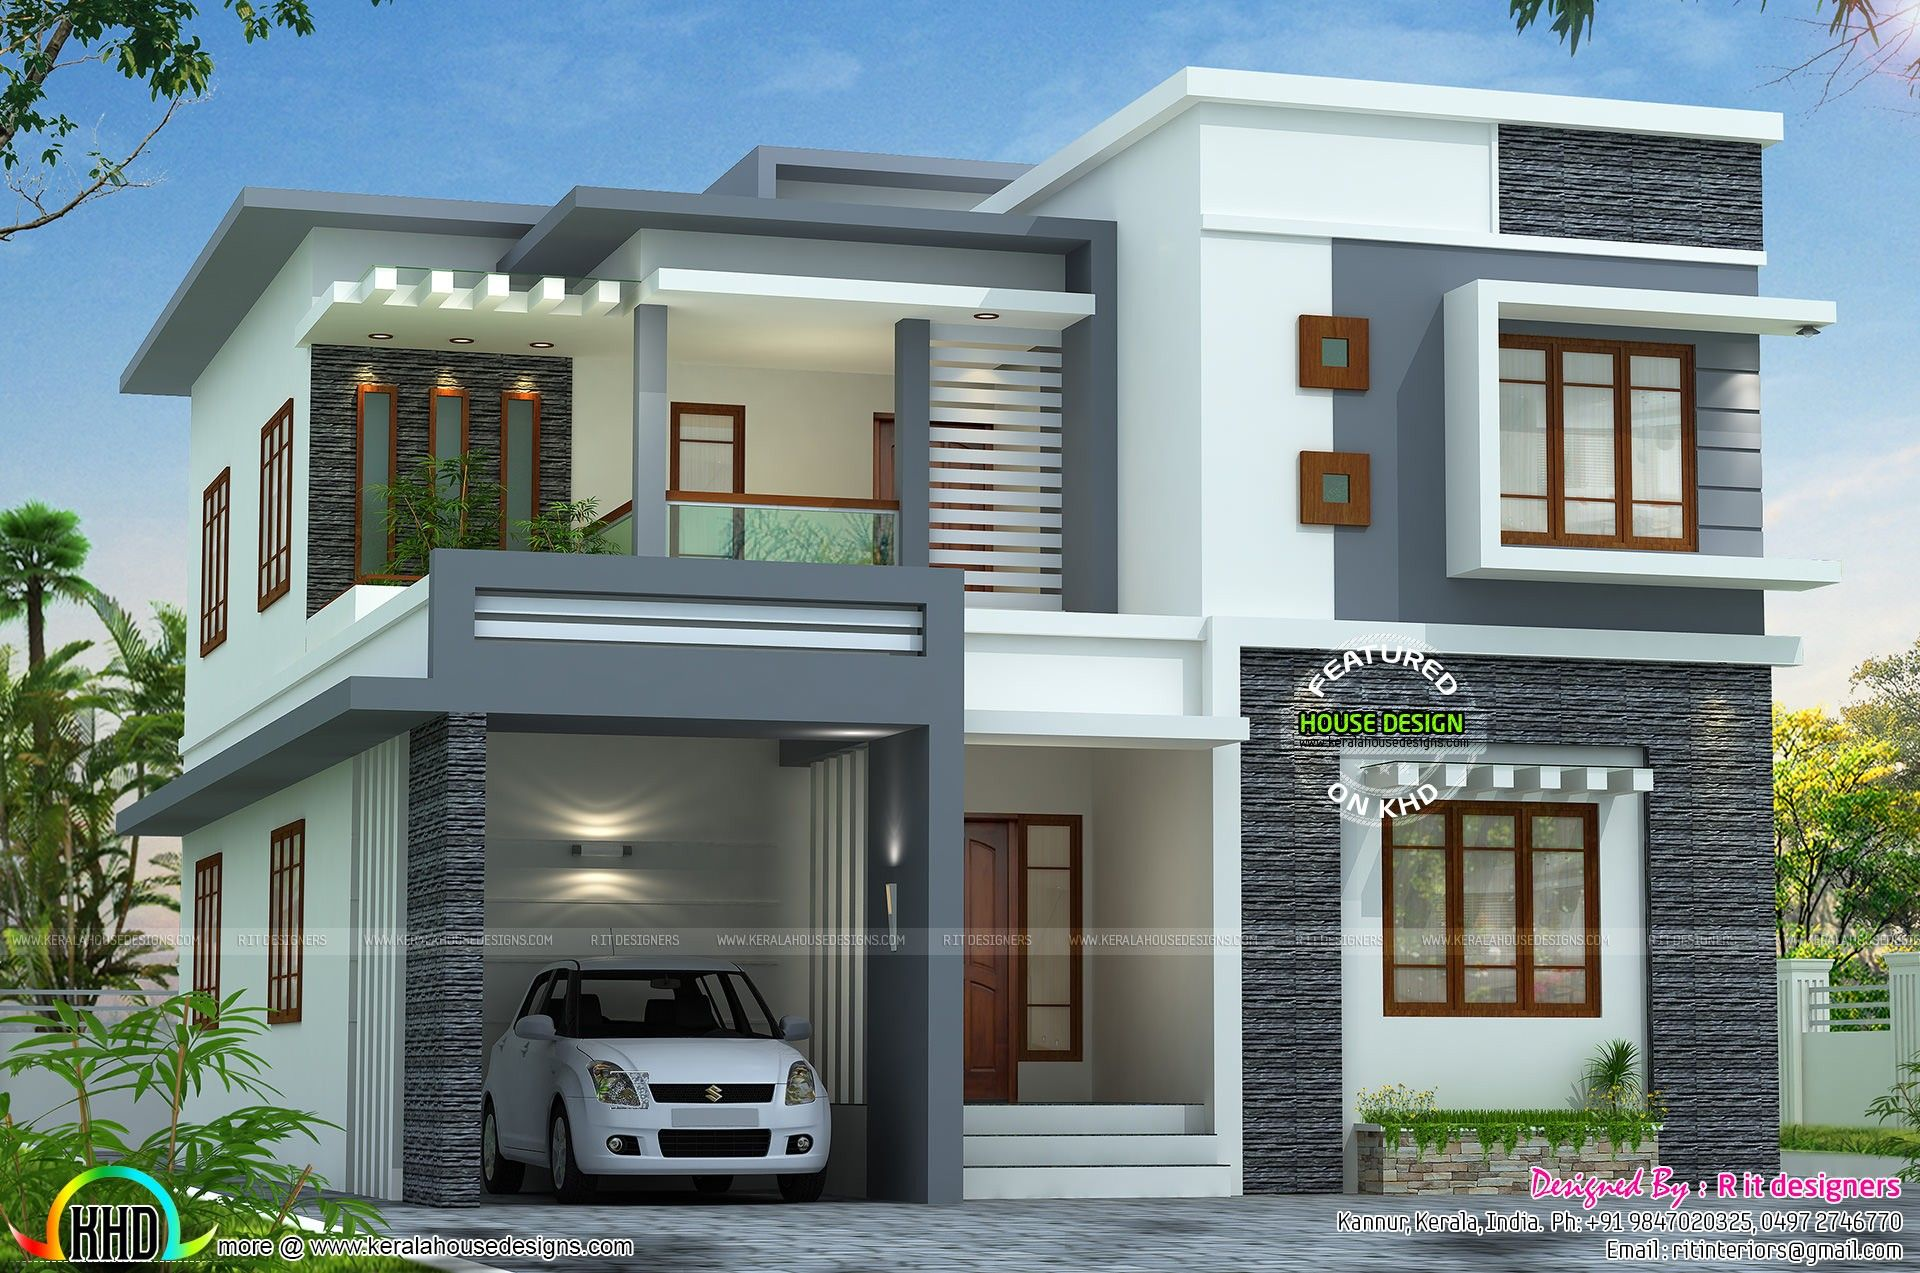 Double Storey House Exterior Design Beautiful Modern Luxury House With Cellar Floor Kerala House Design Two Story House Design Duplex House Design